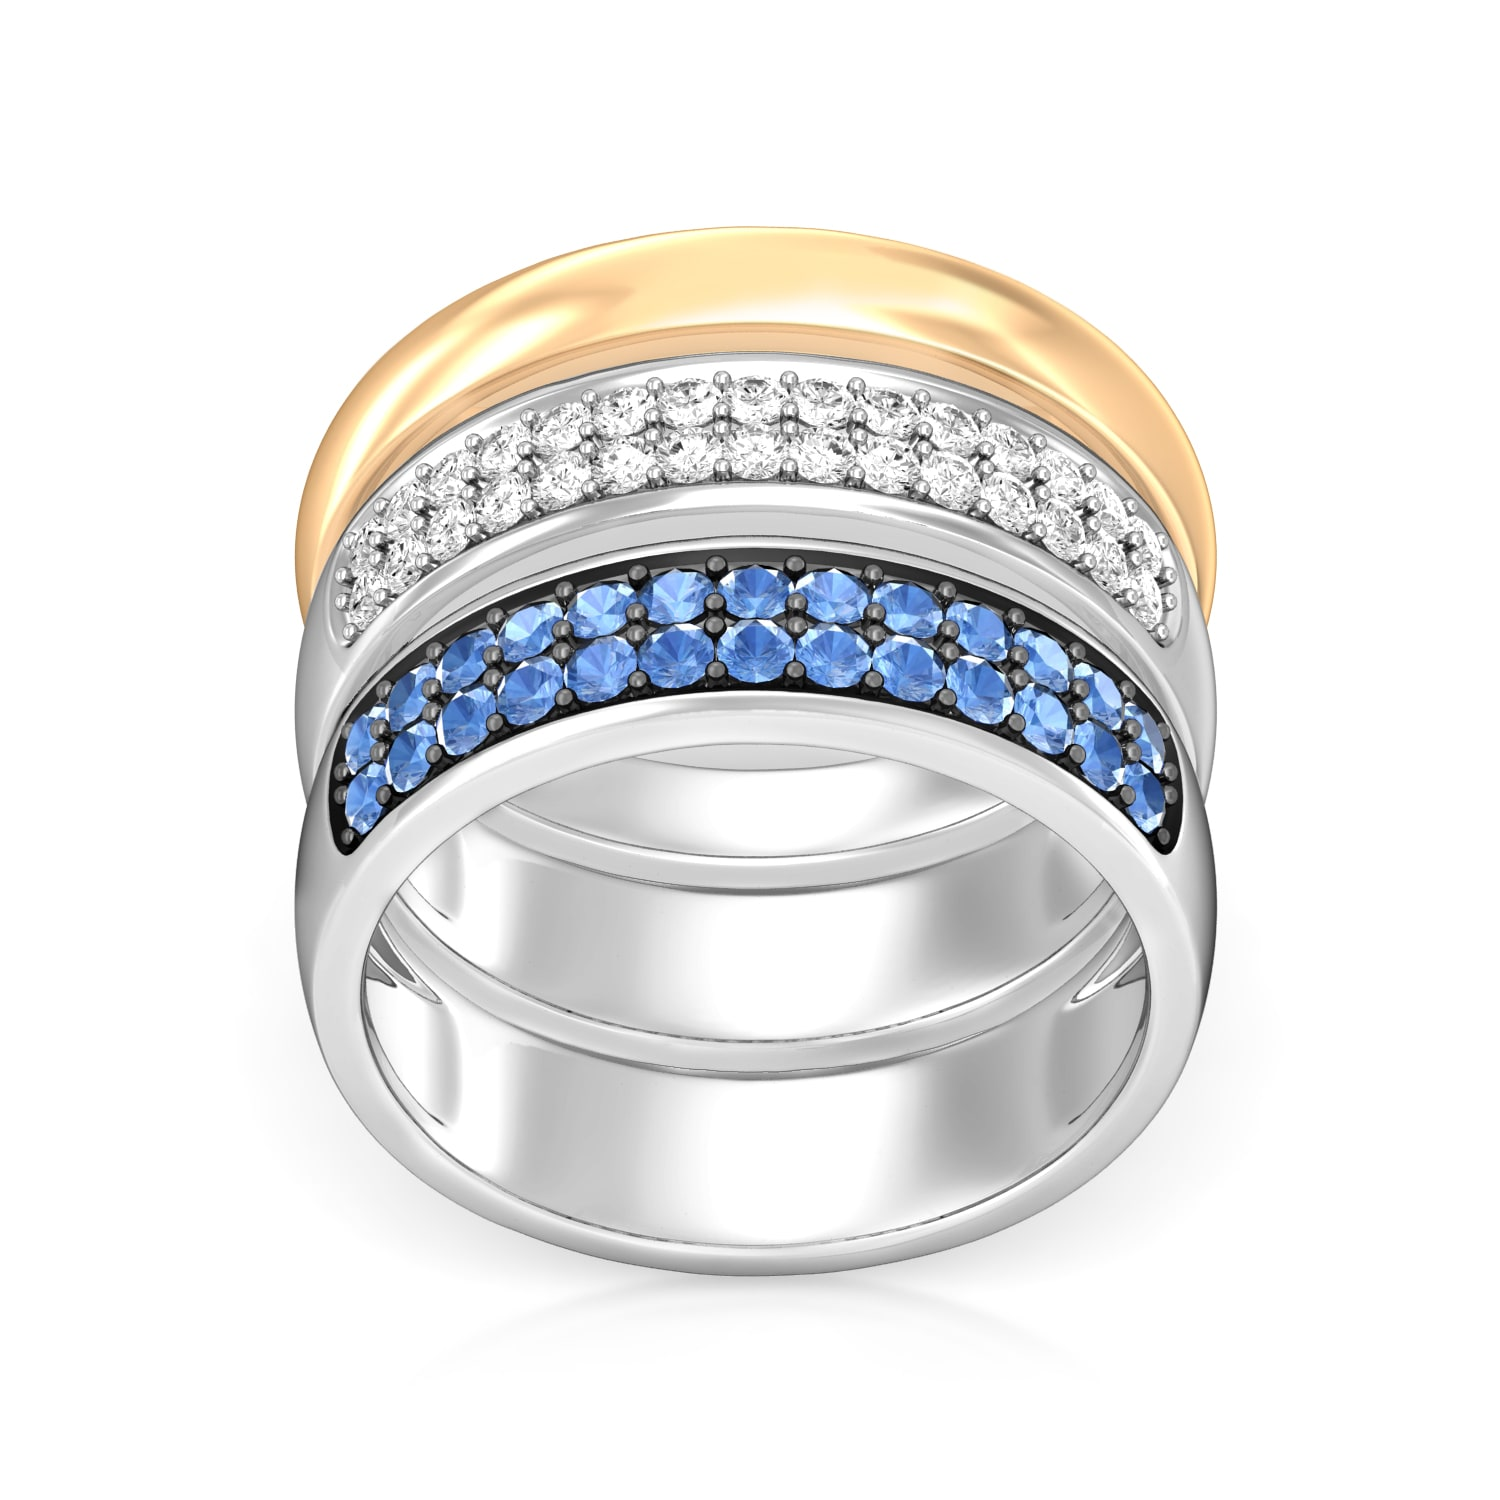 Means of Jeans Diamond Rings